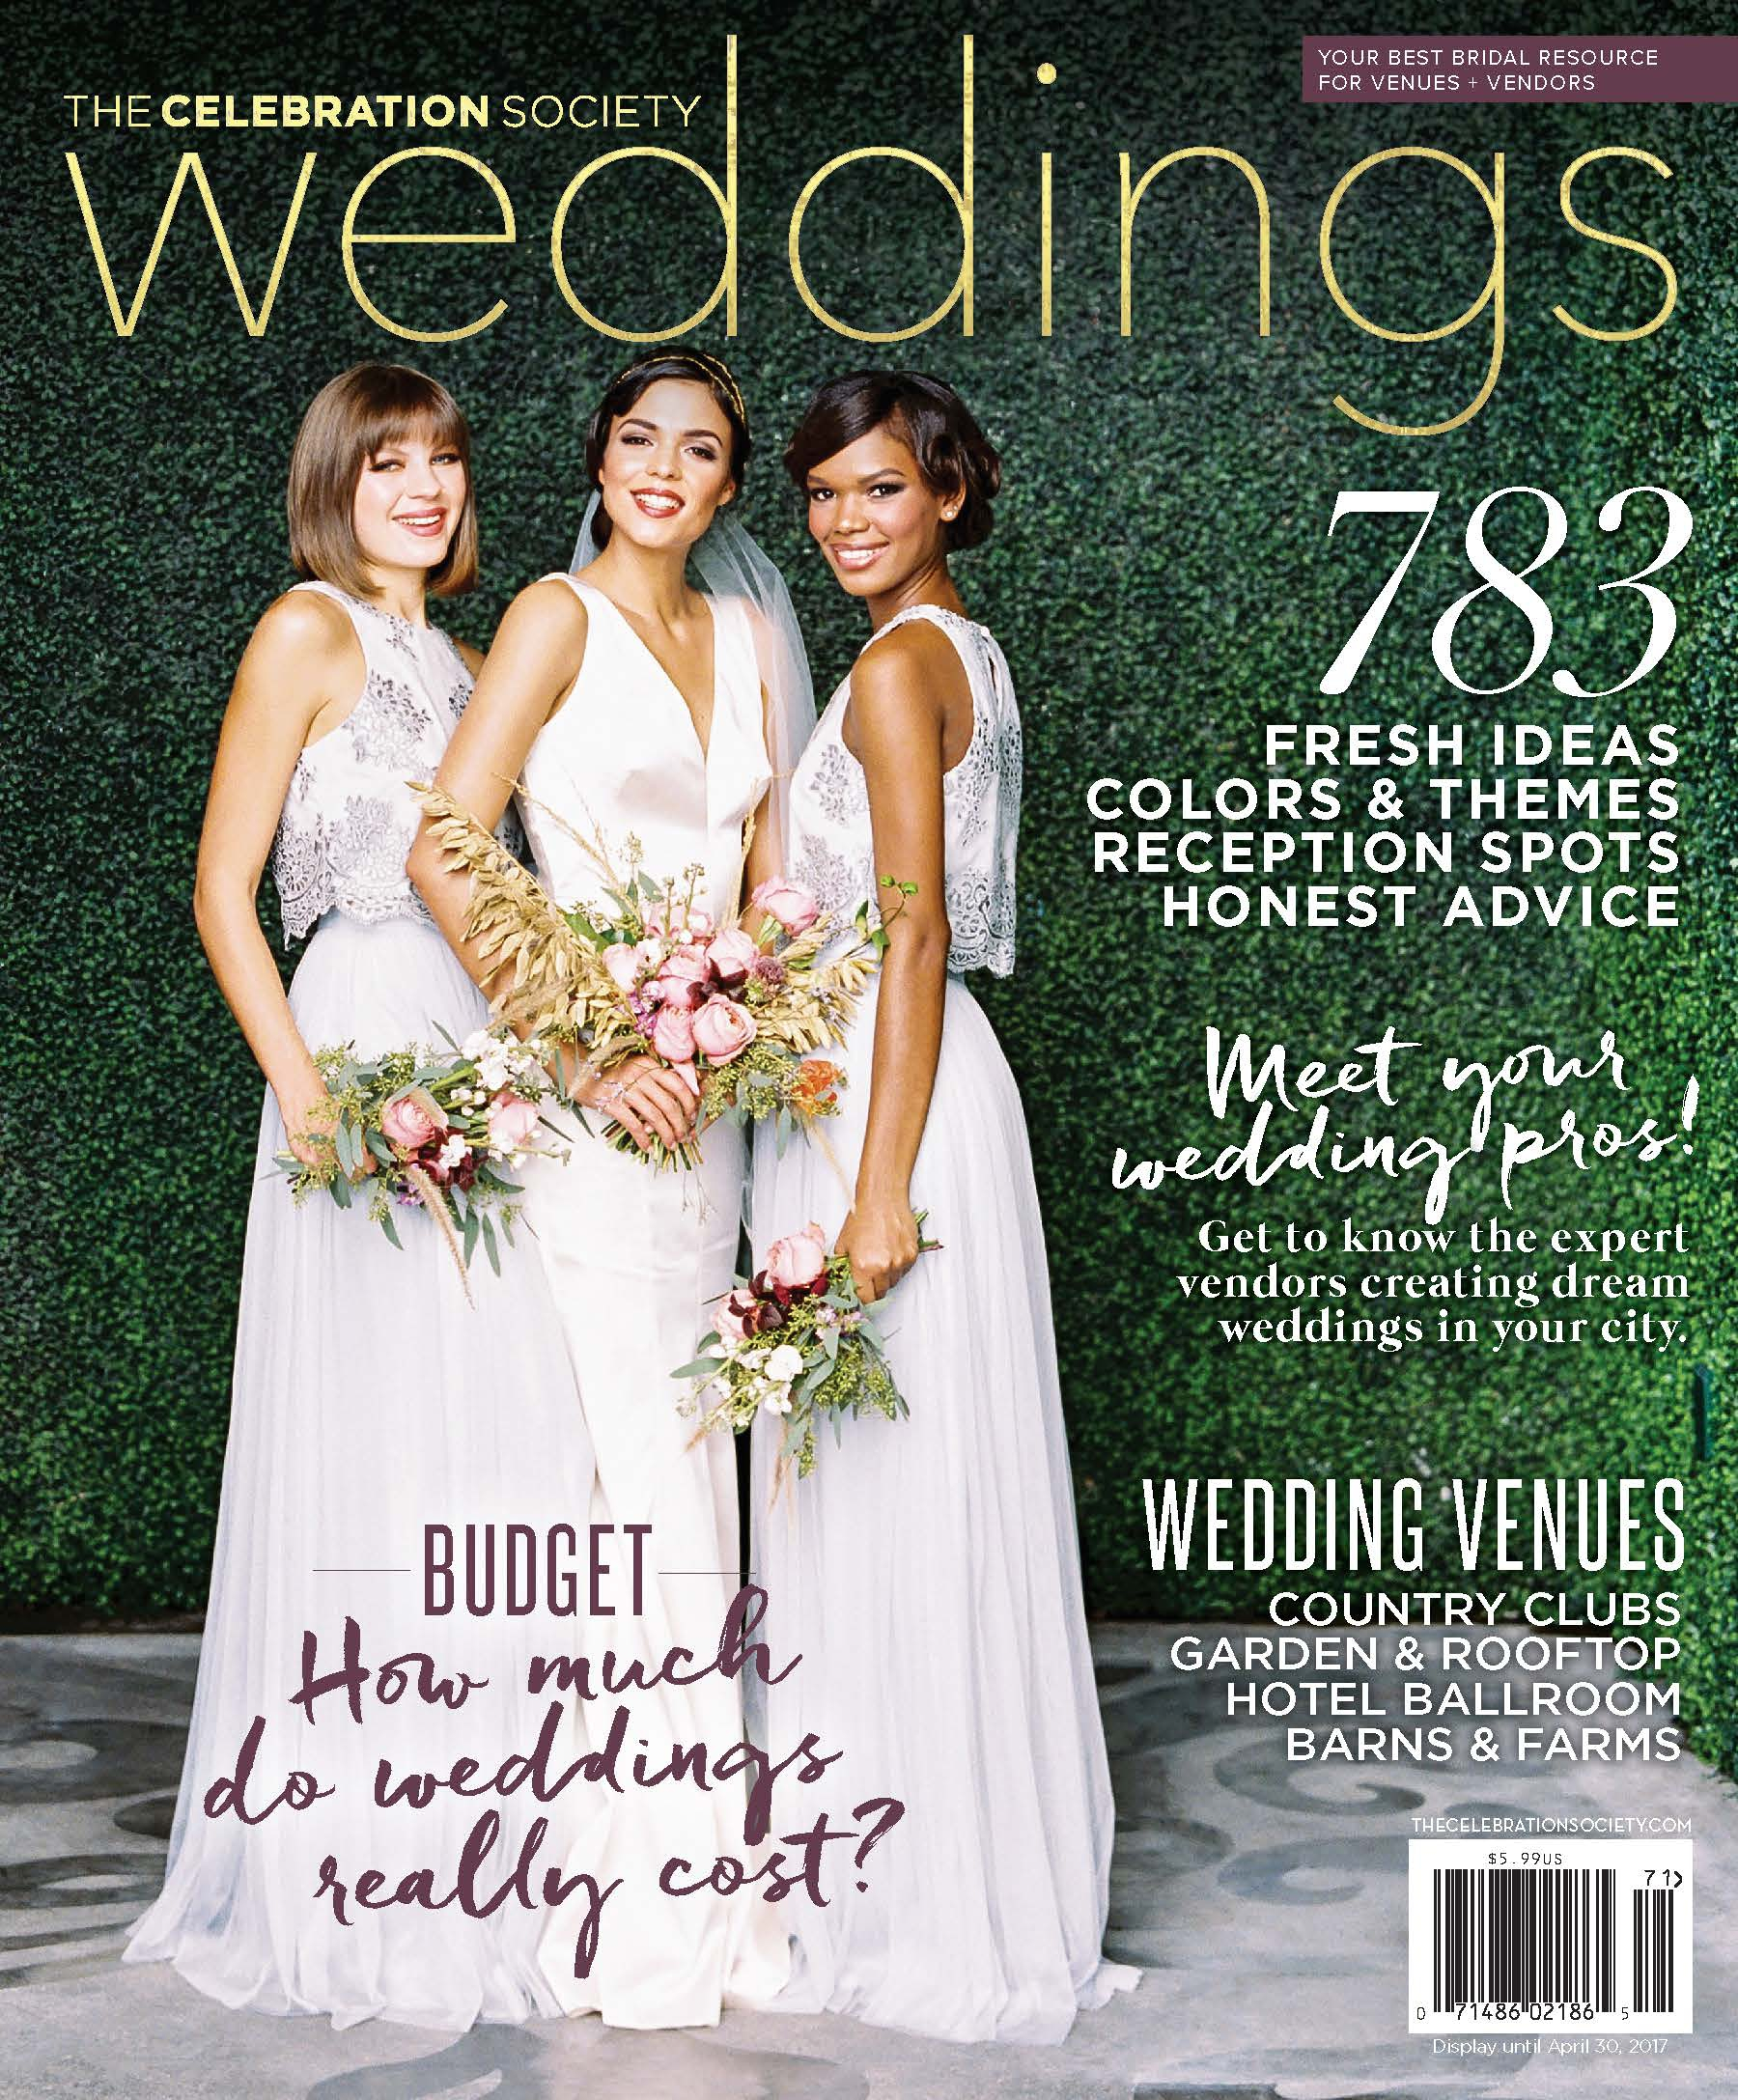 The Celebration Society weddings 2017 issue